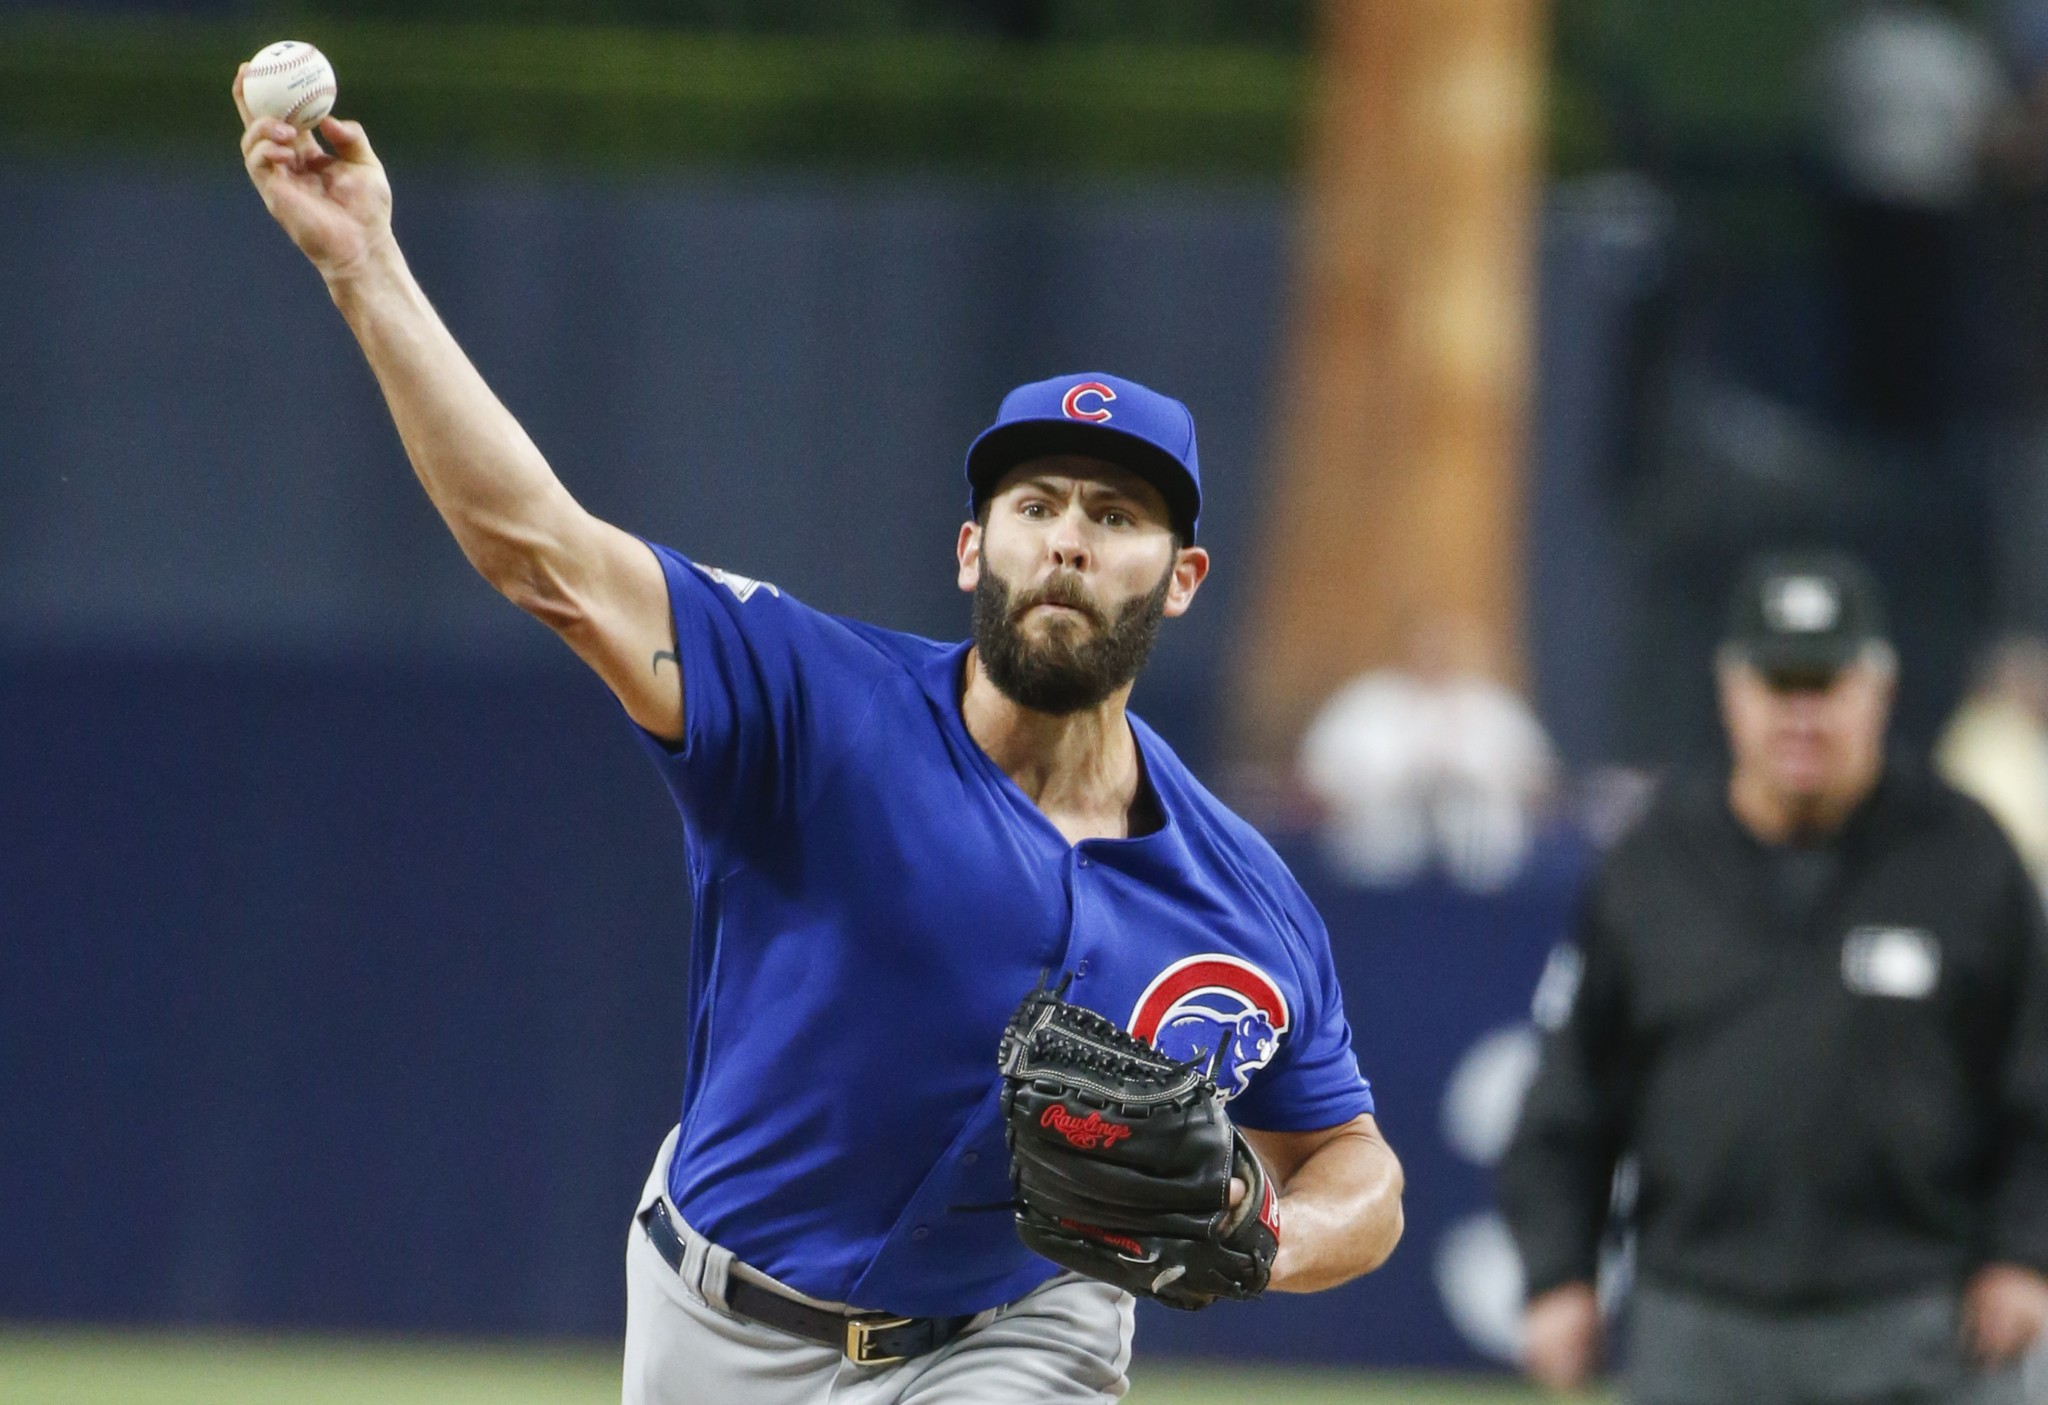 Cubs are first team in baseball to 80 wins after Jake Arrieta's…